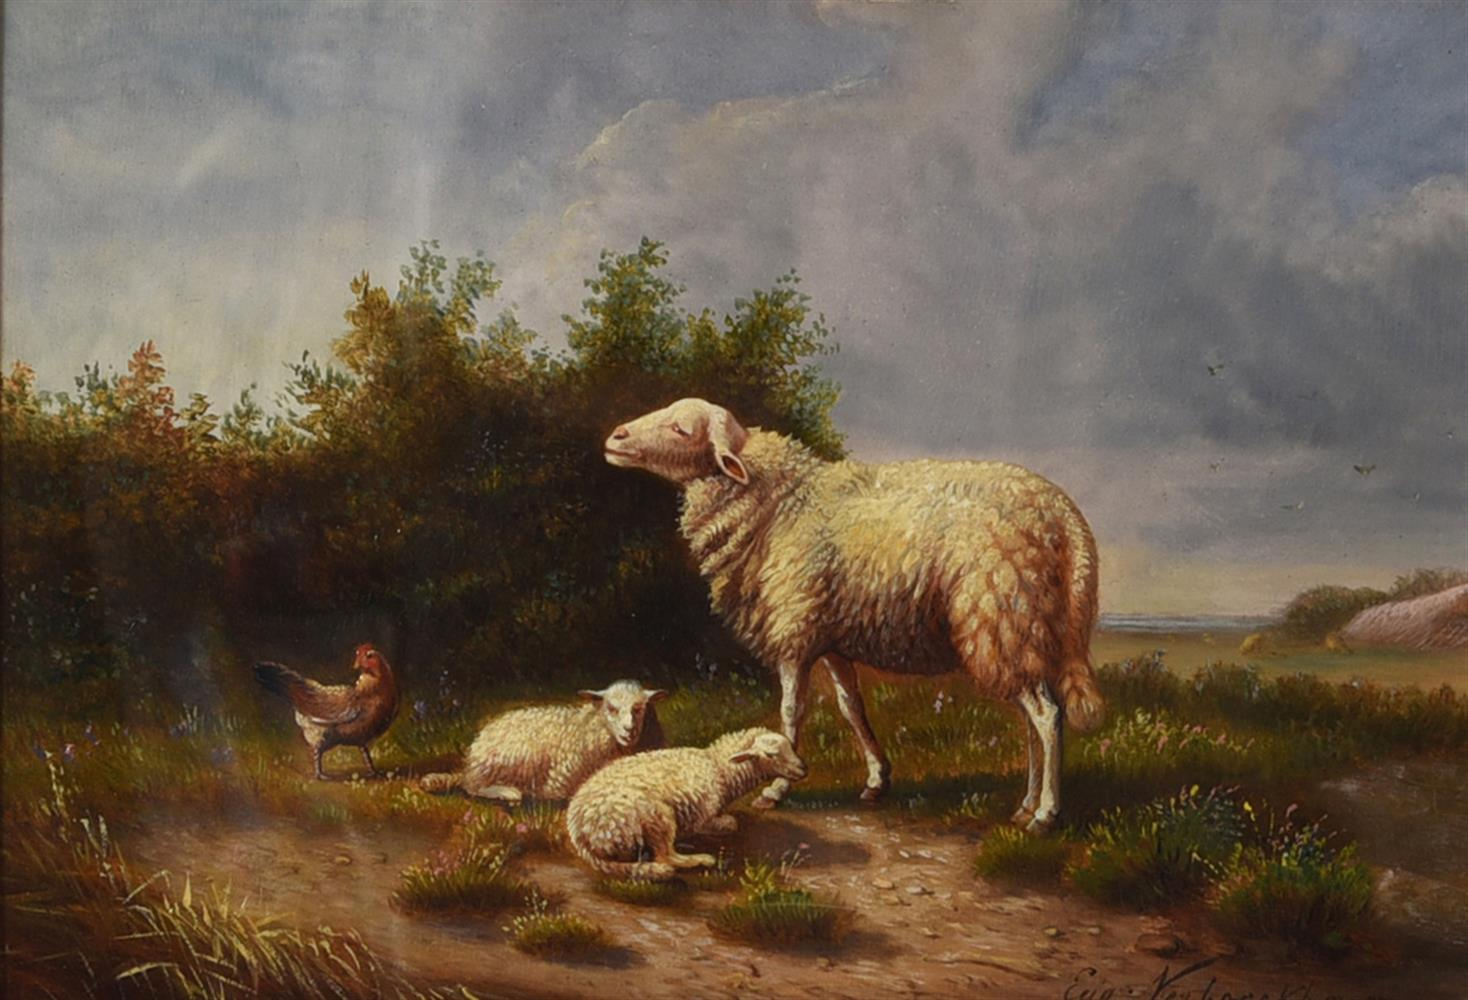 FOLLOWER OF EUGENE VERBOEKHOEVEN, SHEEP, LAMBS AND CHICKEN IN A LANDSCAPE - Image 2 of 3